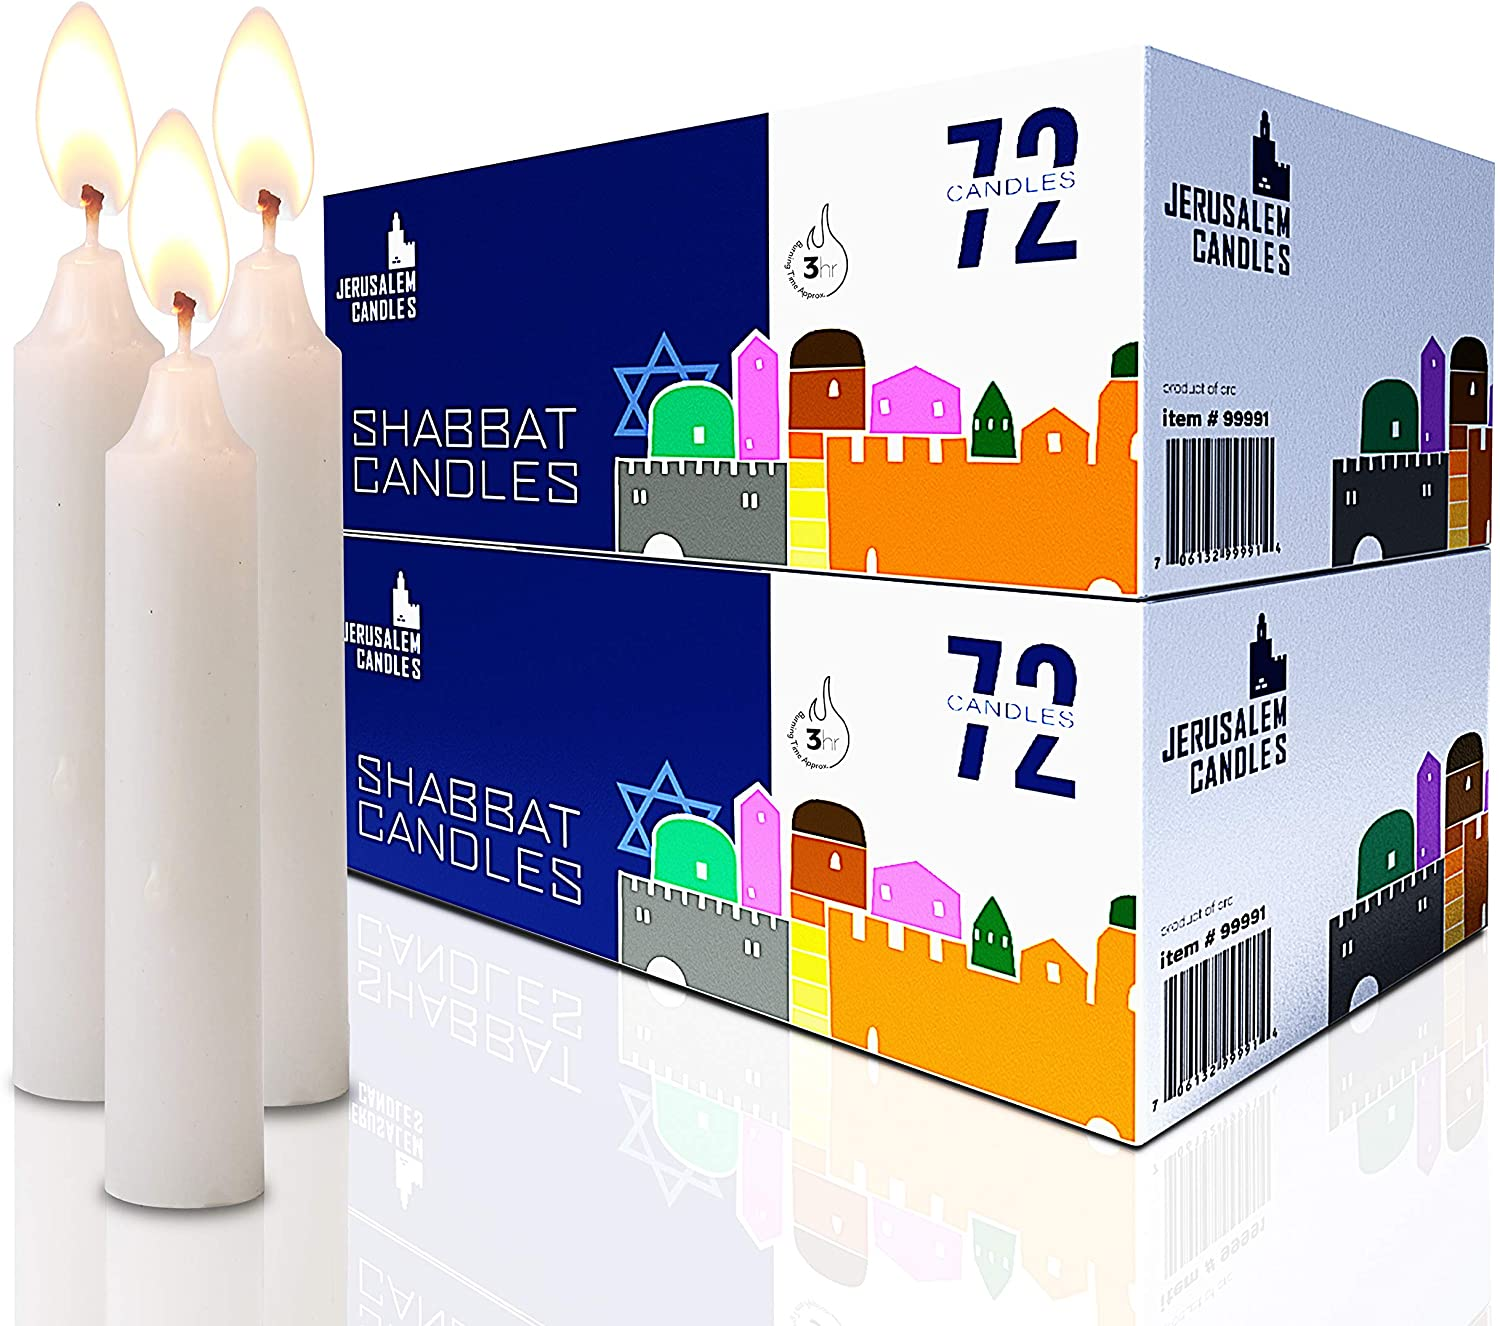 Shabbat Candles - Traditional Shabbos Candles - 3 Hour - 2-Pack x 72 Candles, (144 Candles)